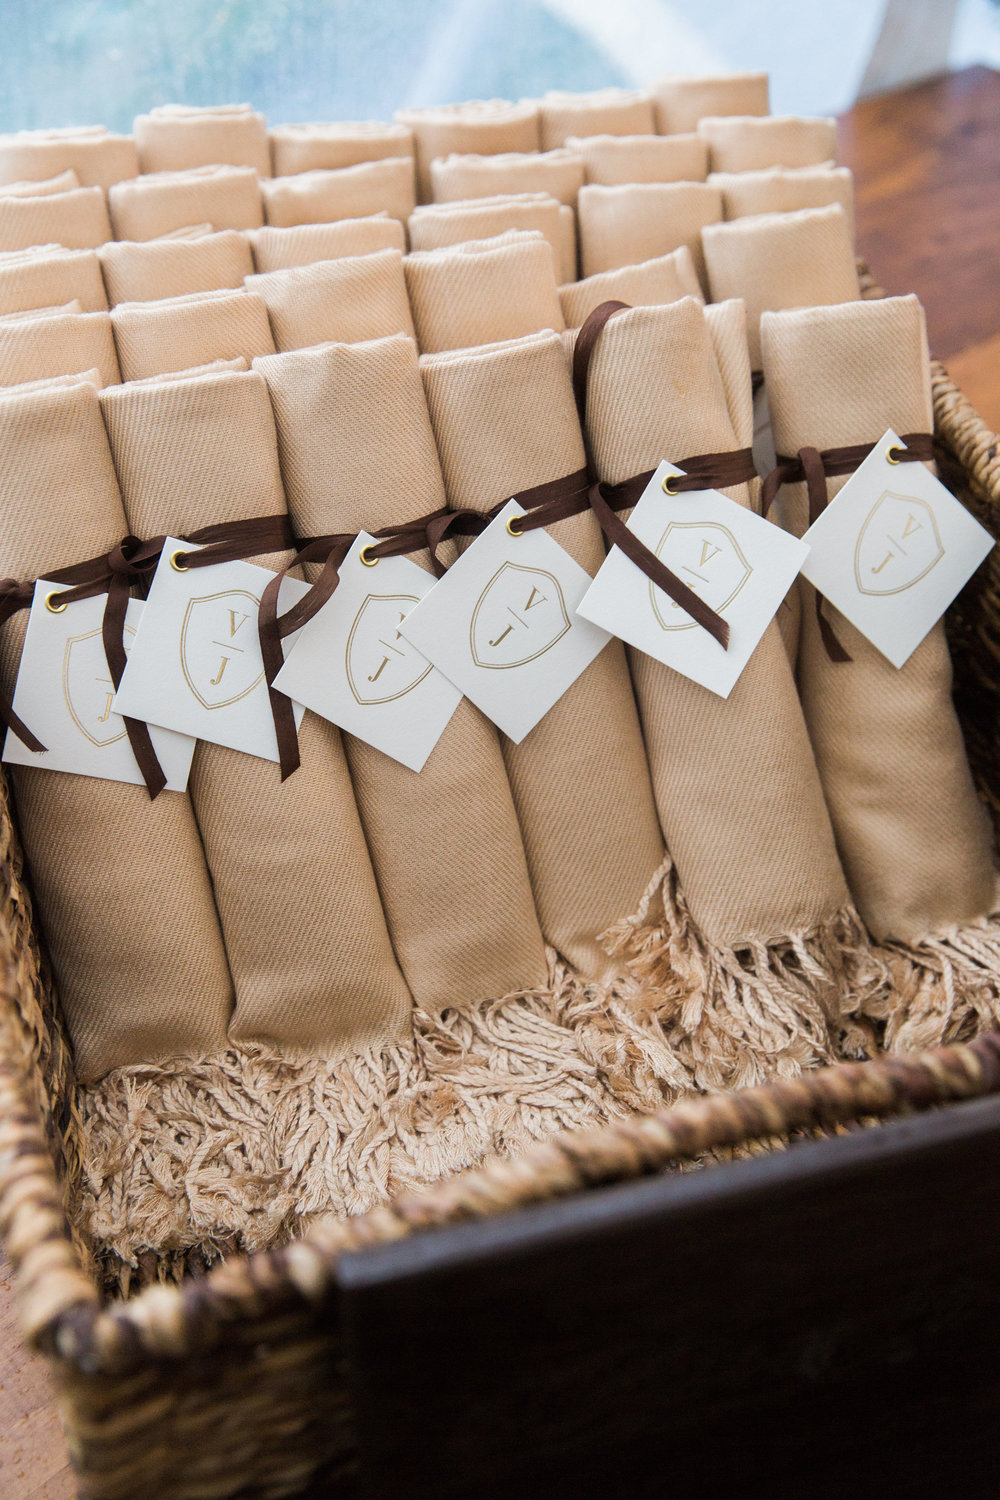 gold-foil-tags-pashmina-wedding-favor-castle-hill-wedding-newport-ri-champagne-and-ink-rebecca-arthurs-photography.jpg